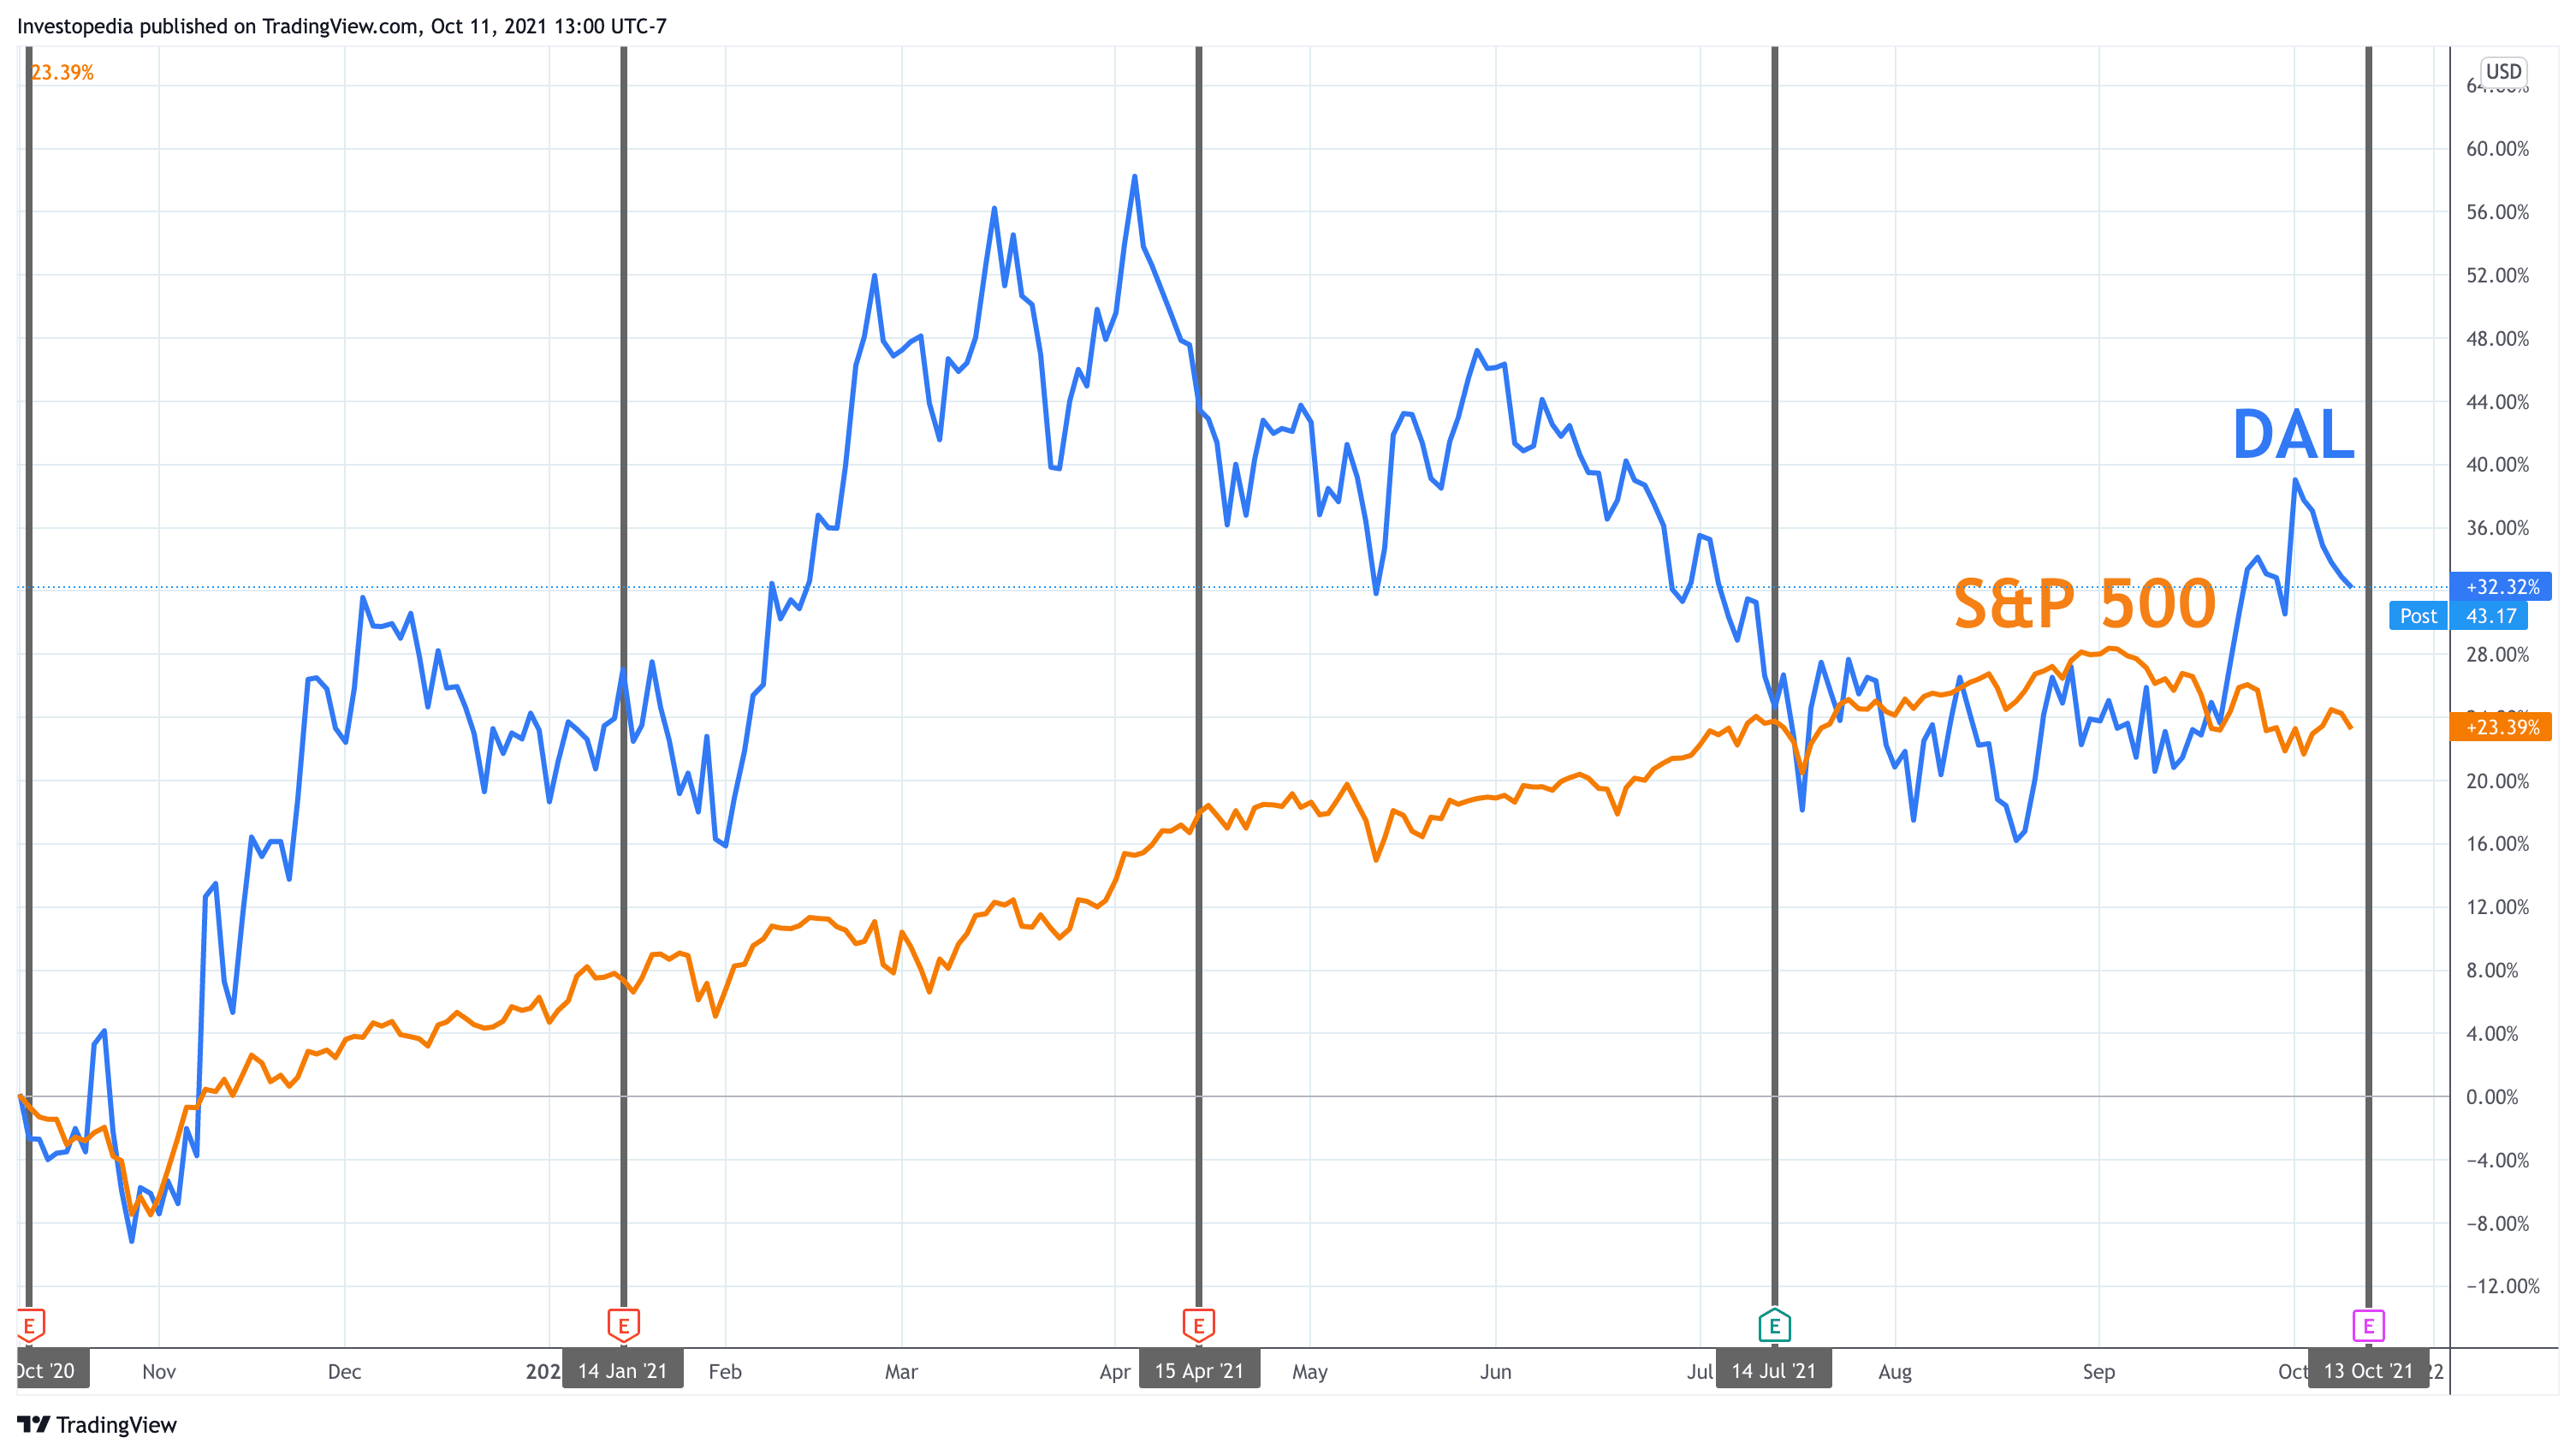 One Year Total Return for S&P 500 and Delta Air Lines